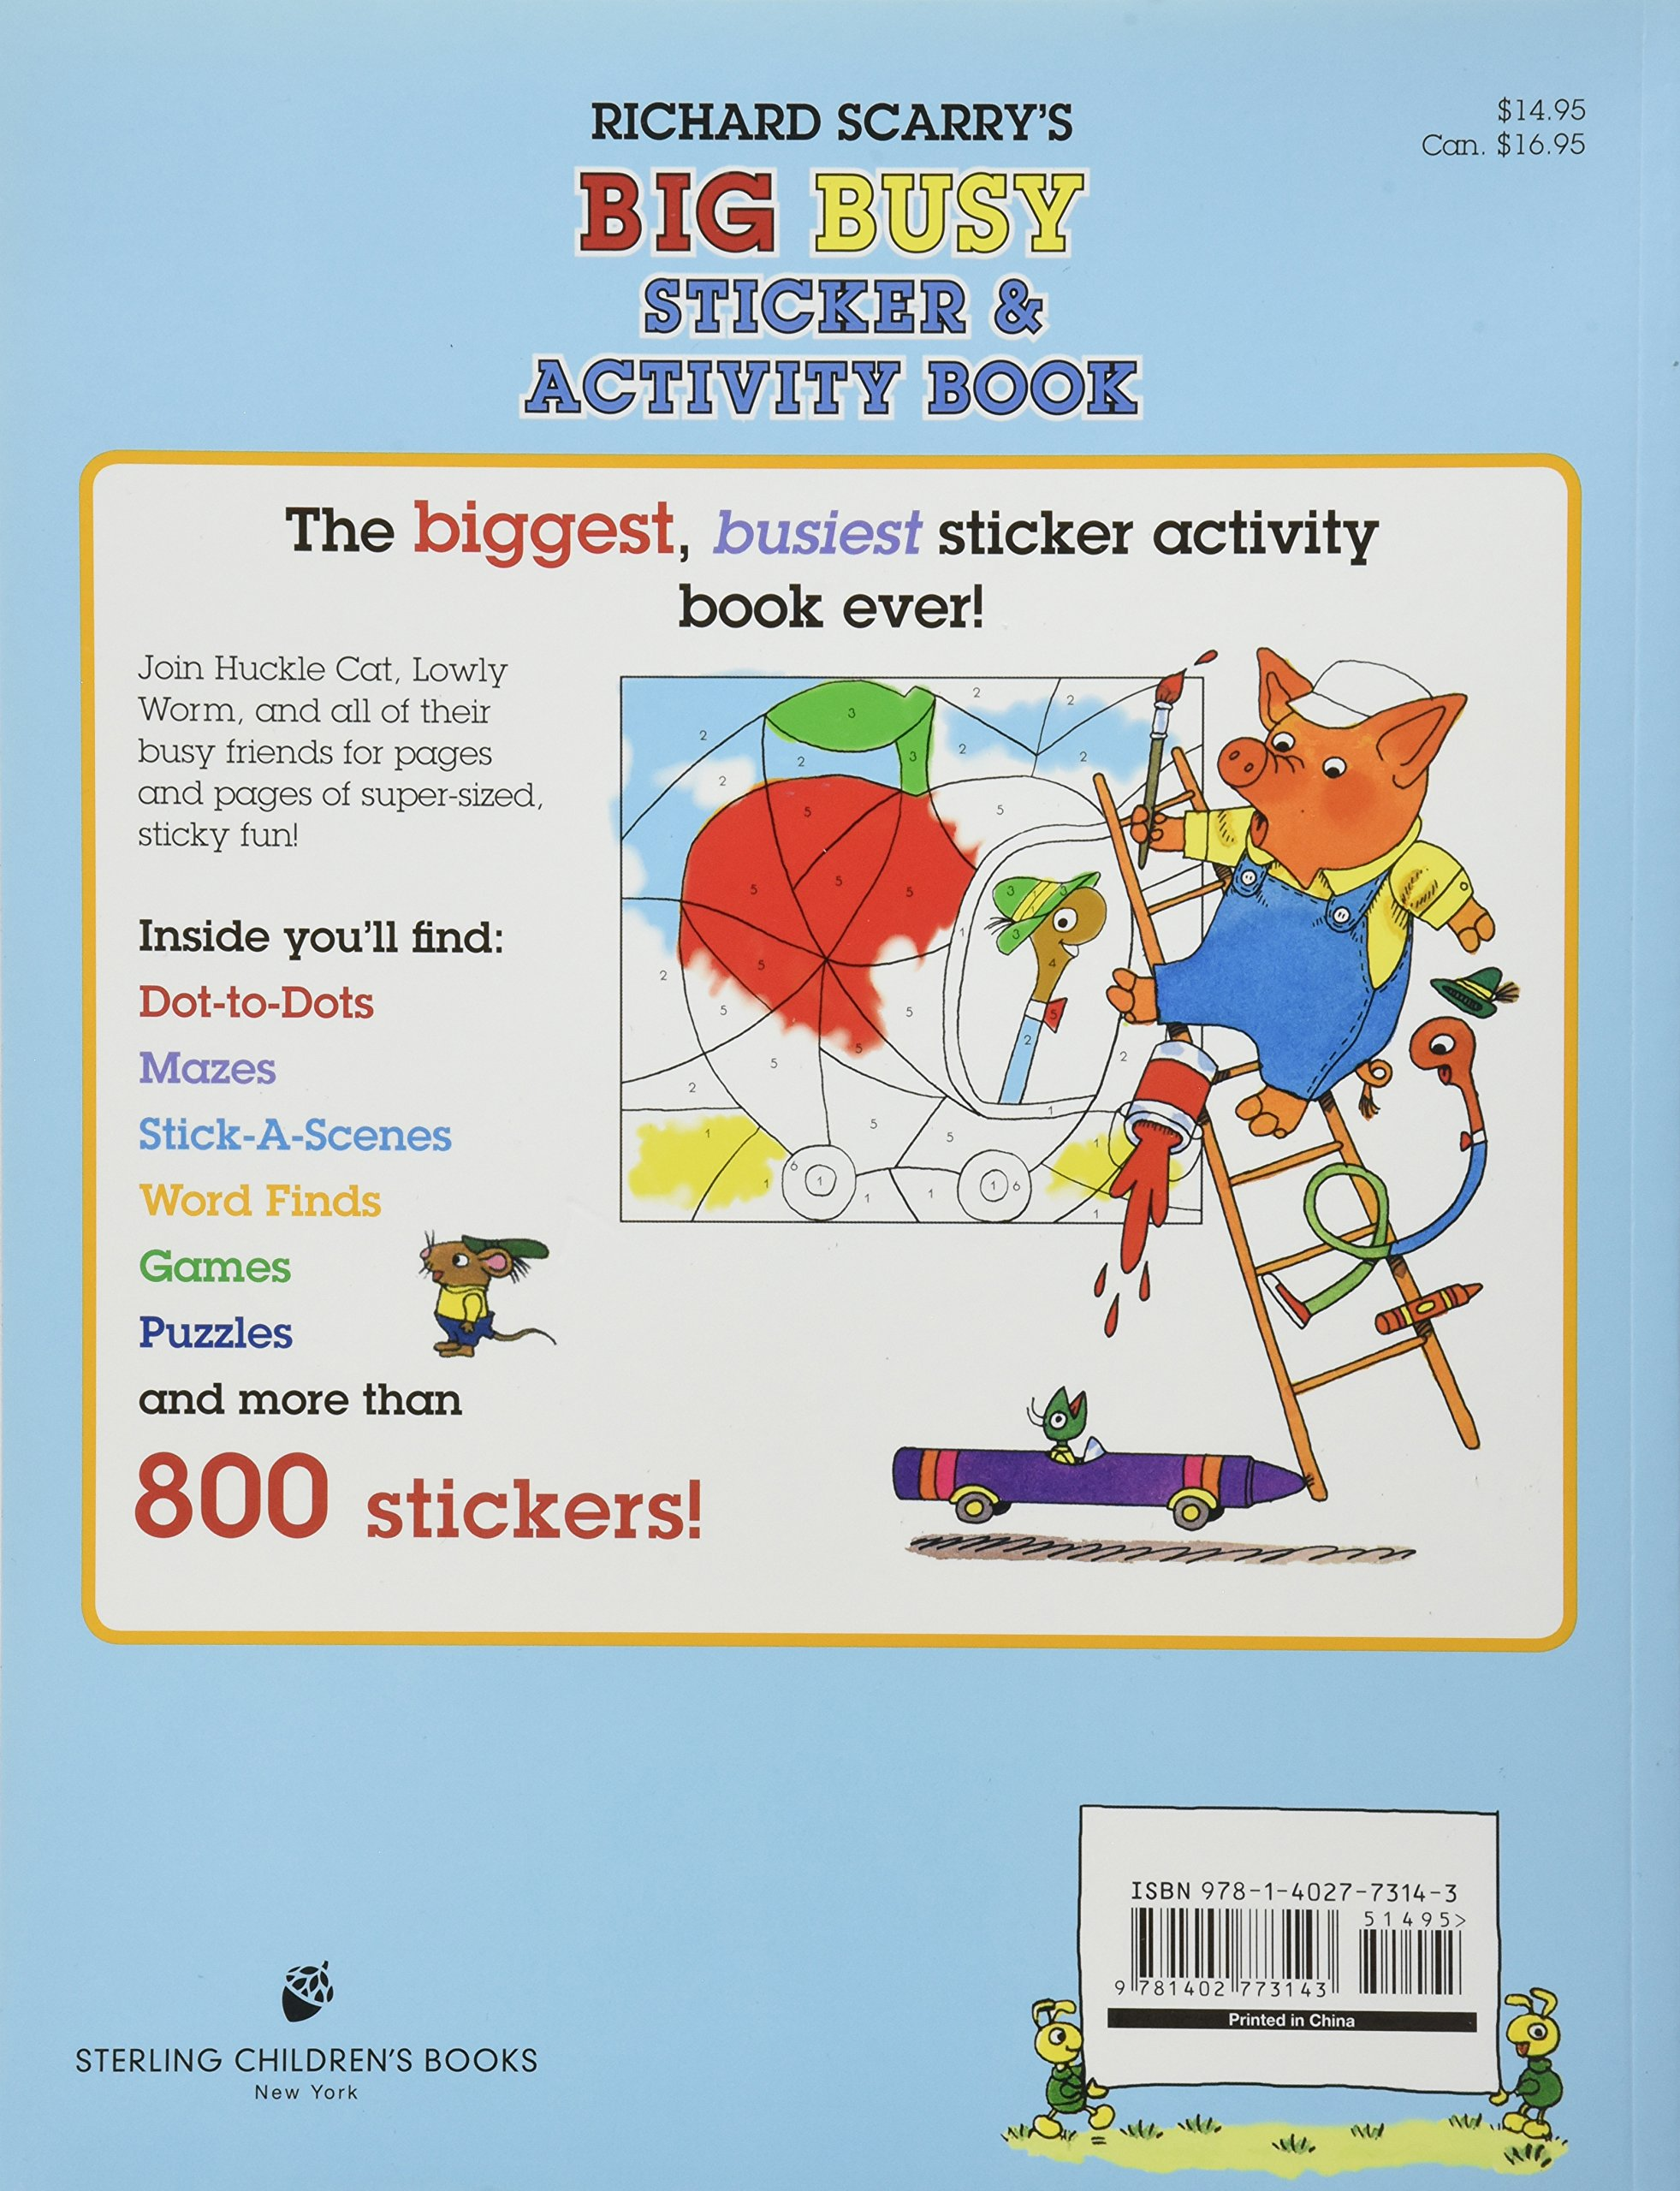 Richard scarrys big busy sticker activity book amazon richard scarrys big busy sticker activity book amazon richard scarry libros en idiomas extranjeros gumiabroncs